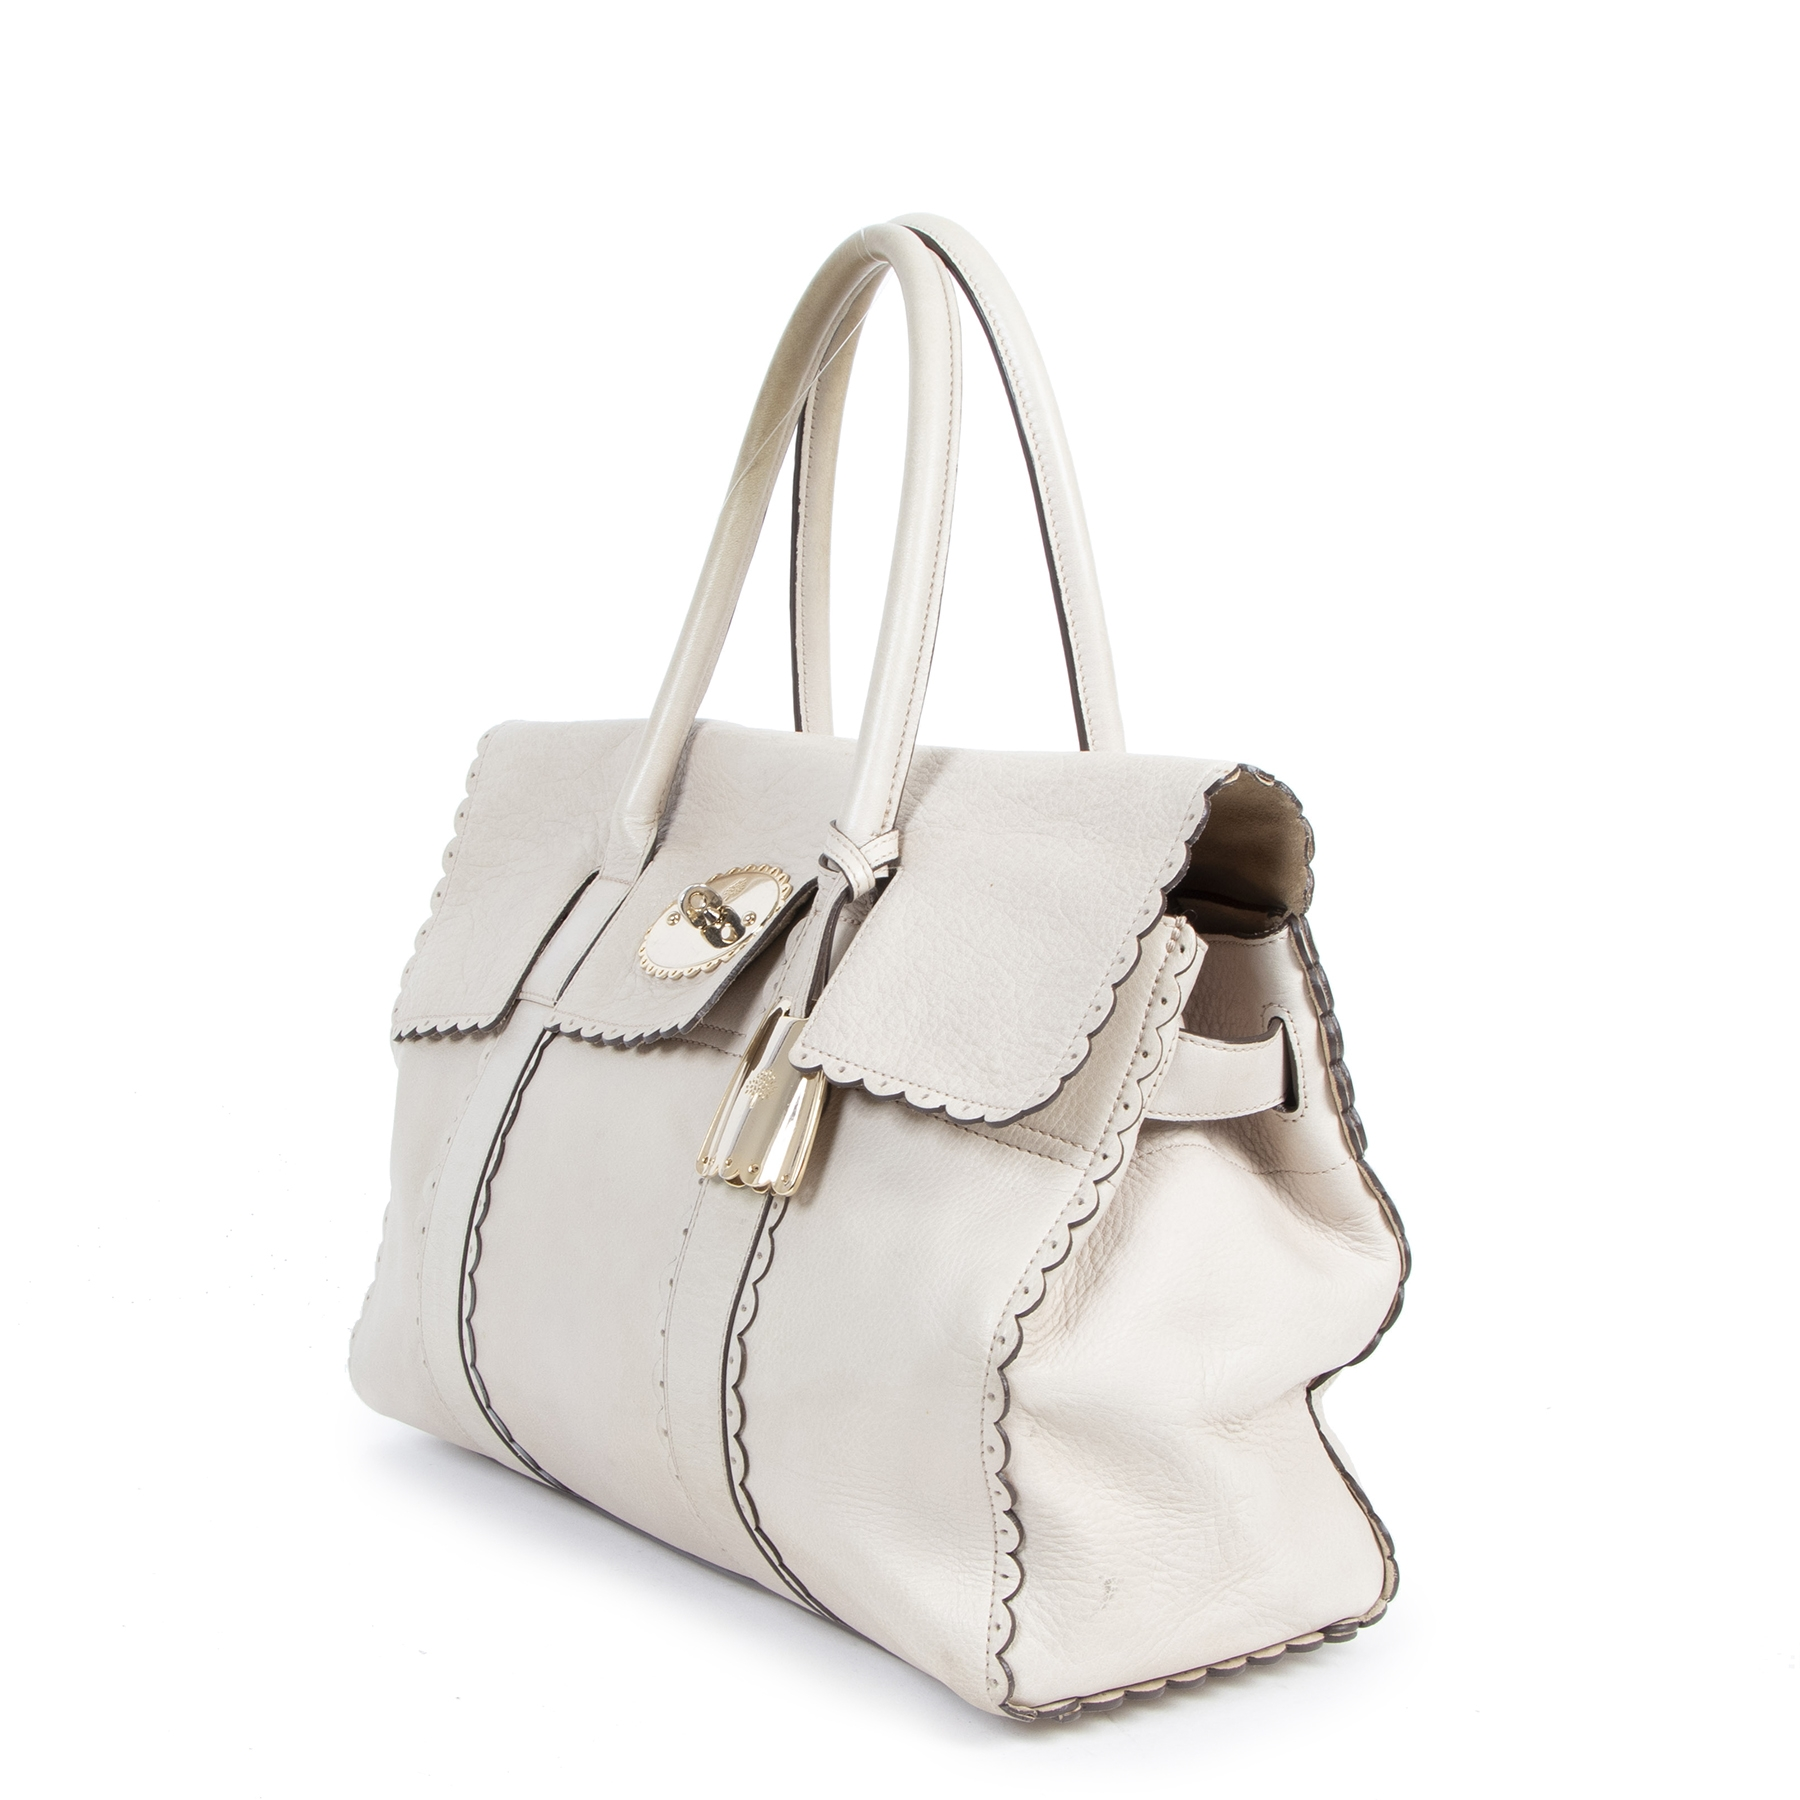 Mulberry Cookie Bayswater Satchel Pebble Beige Top Handle Bag